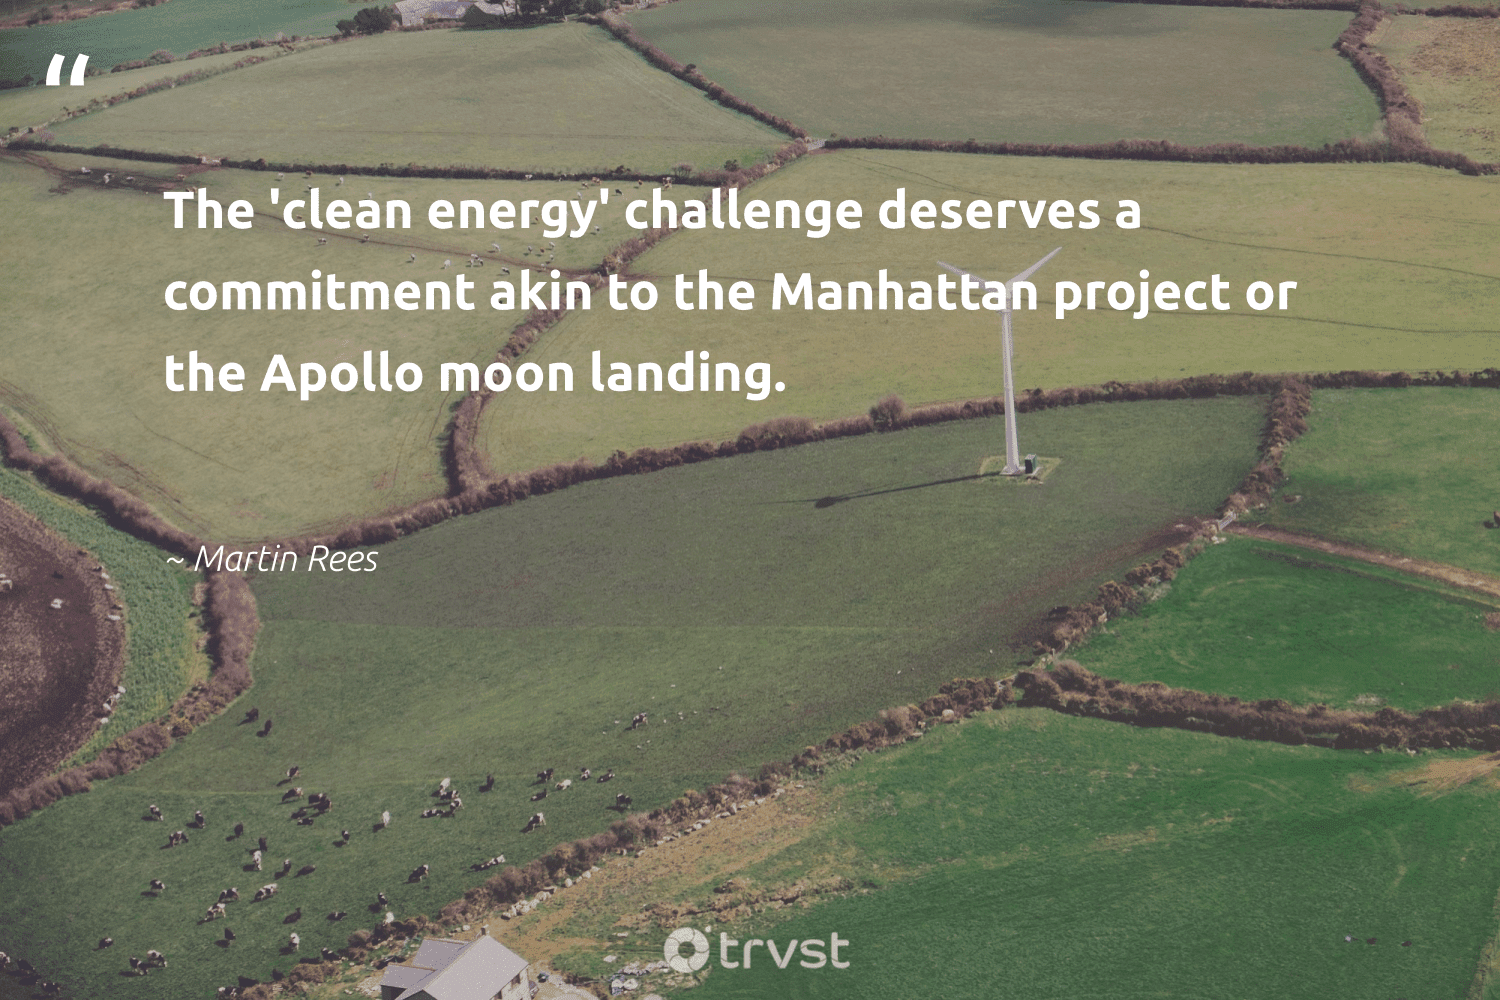 """""""The 'clean energy' challenge deserves a commitment akin to the Manhattan project or the Apollo moon landing.""""  - Martin Rees #trvst #quotes #renewableenergy #energy #cleanenergy #100percentrenewable #carbonfree #planetearth #planetearthfirst #lowcarbon #sustainability #energytransition"""